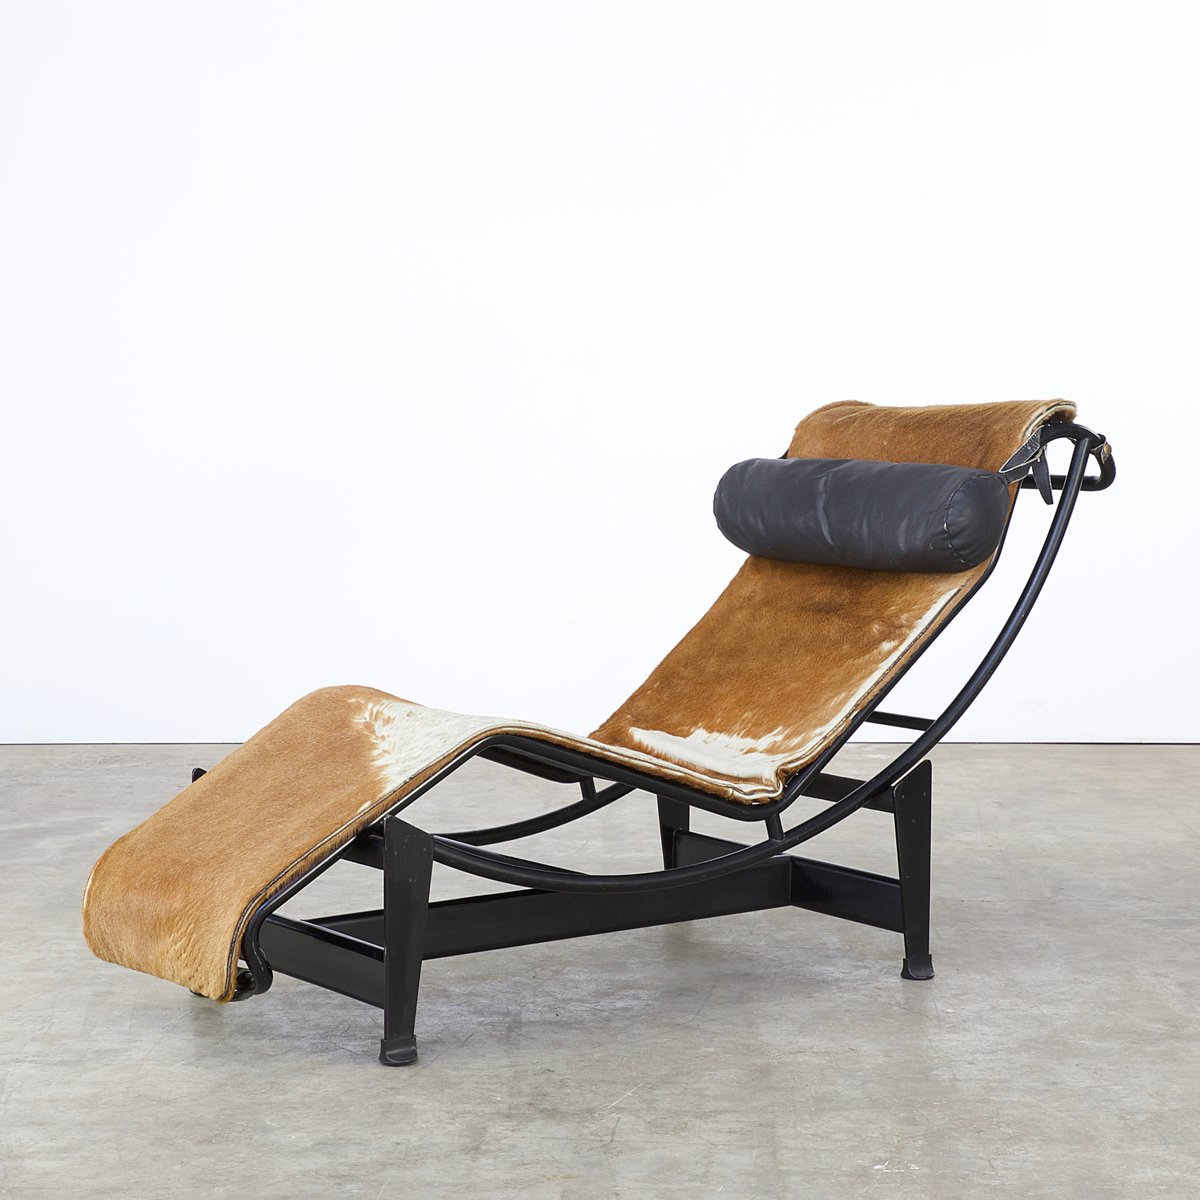 chaise vintage lc4 7275 en peau de poney par le corbusier. Black Bedroom Furniture Sets. Home Design Ideas